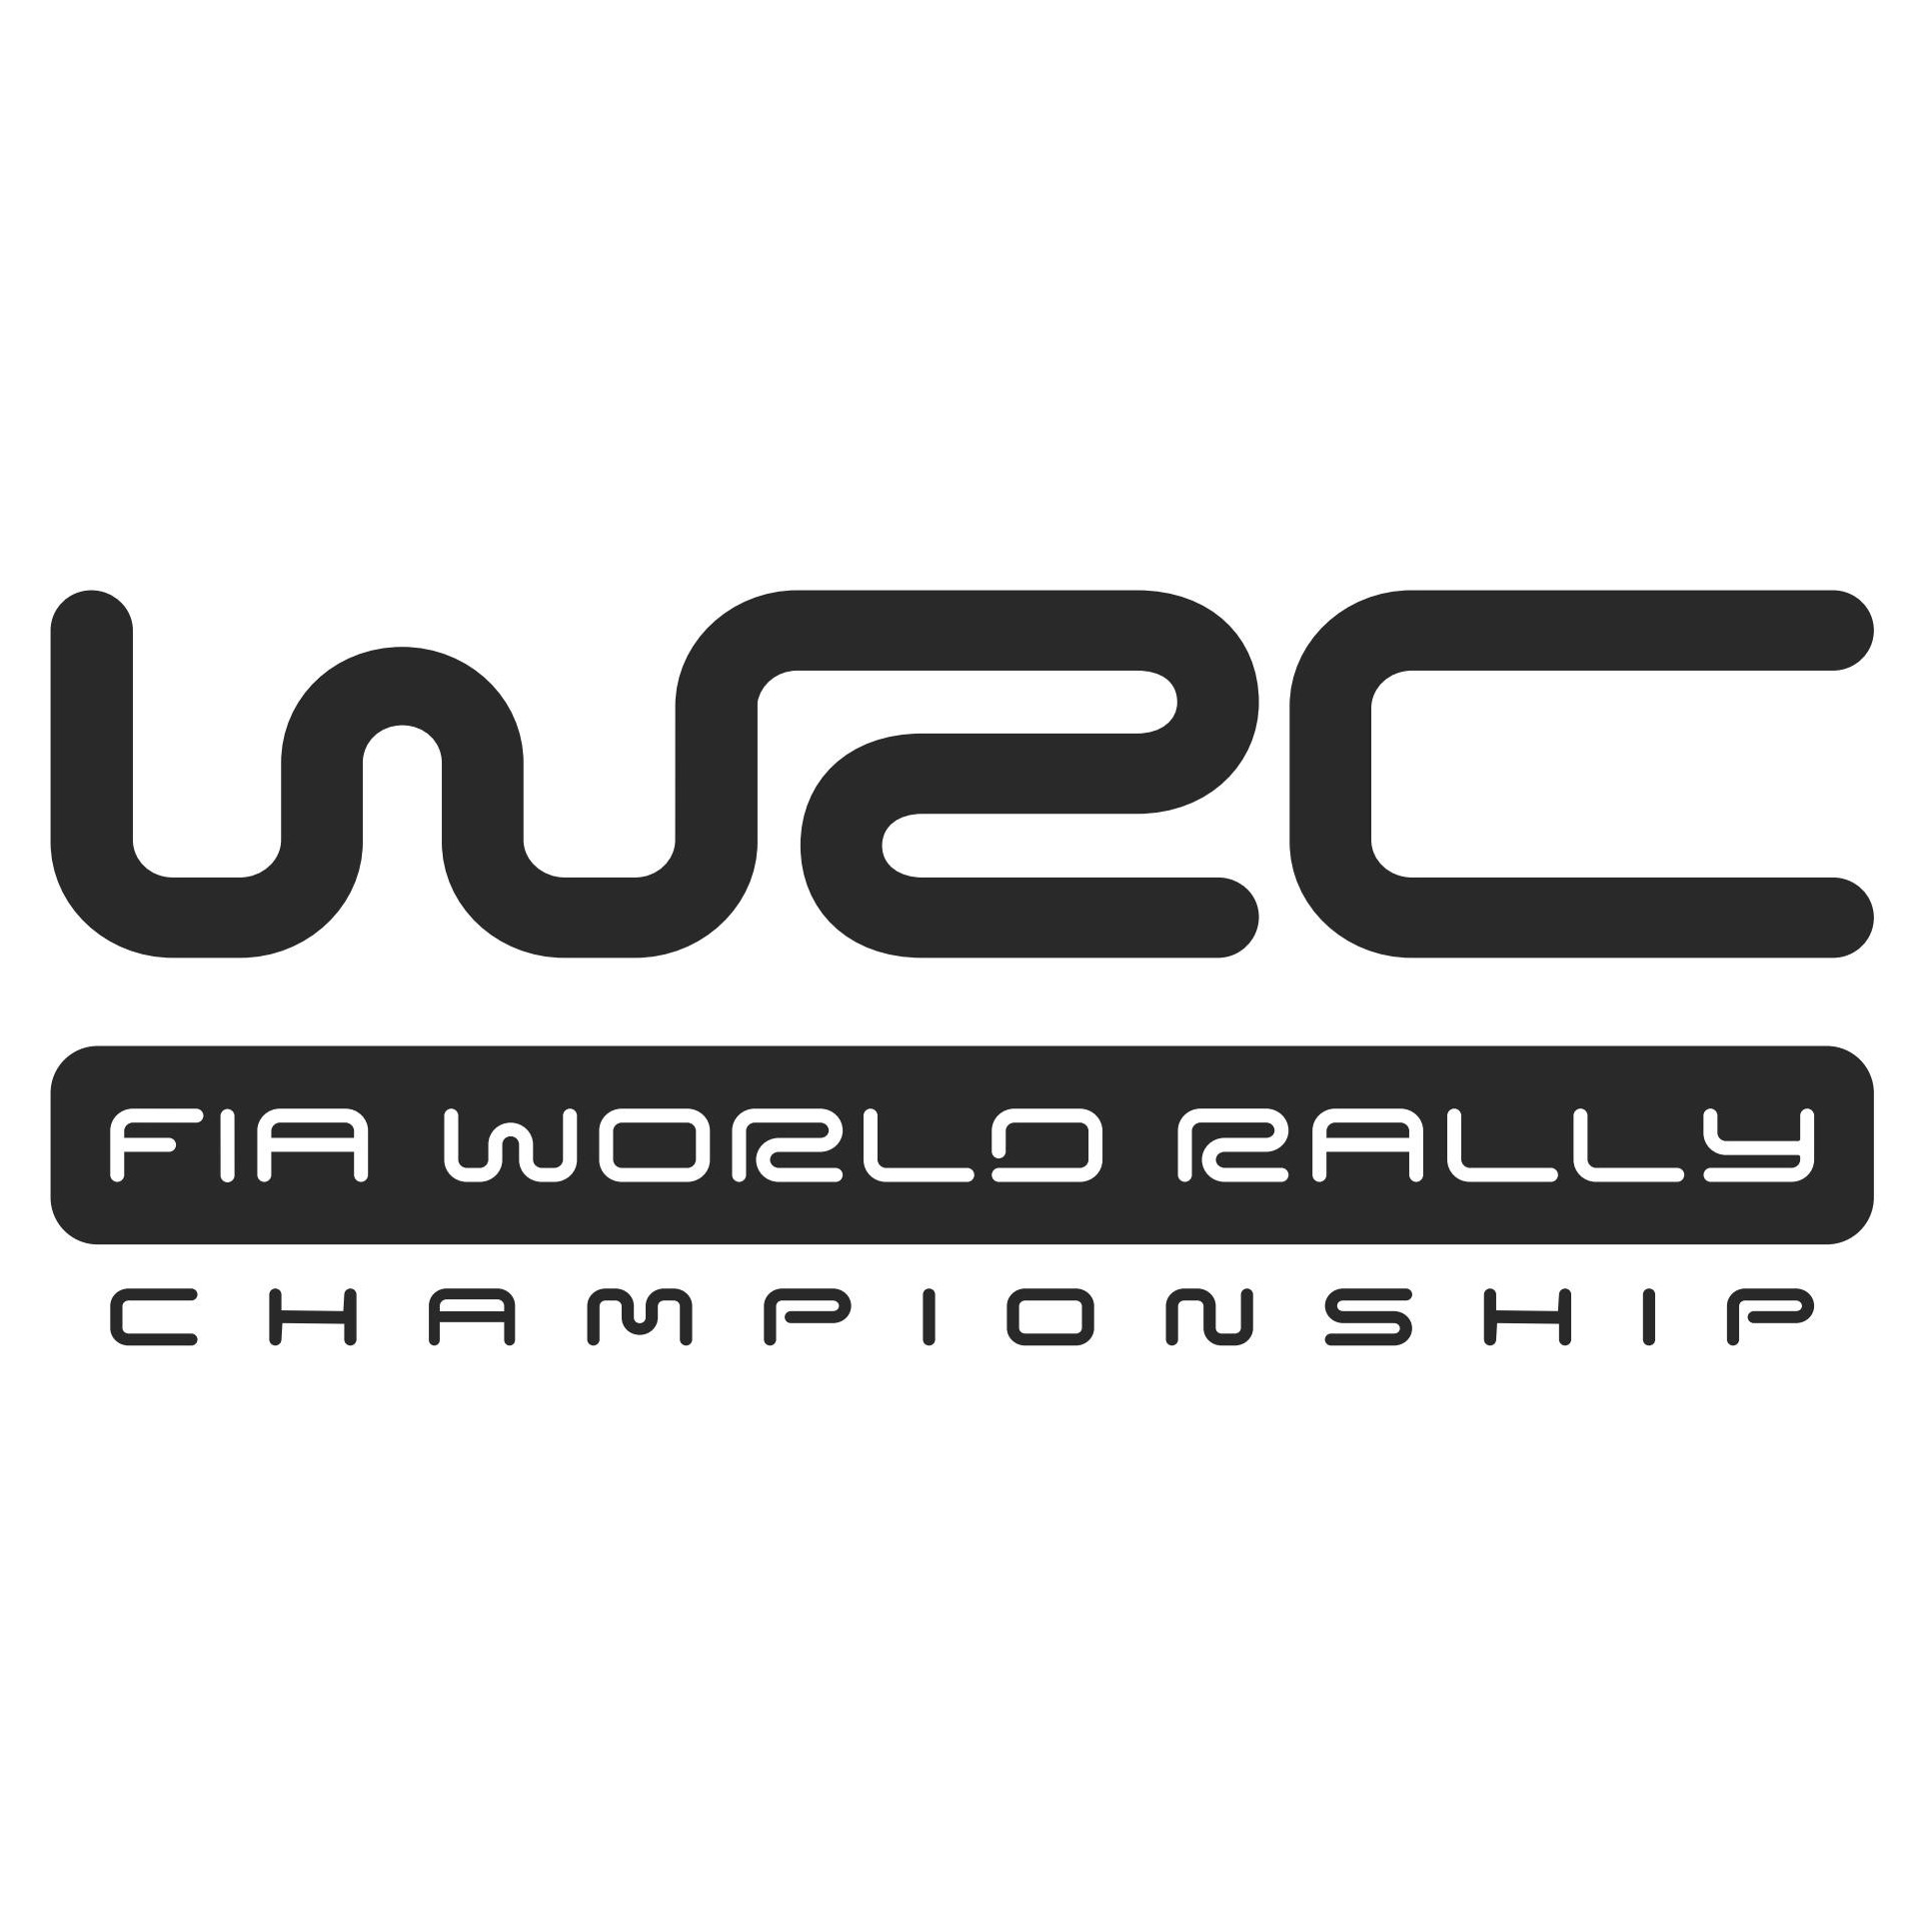 2014 World Rally Championship